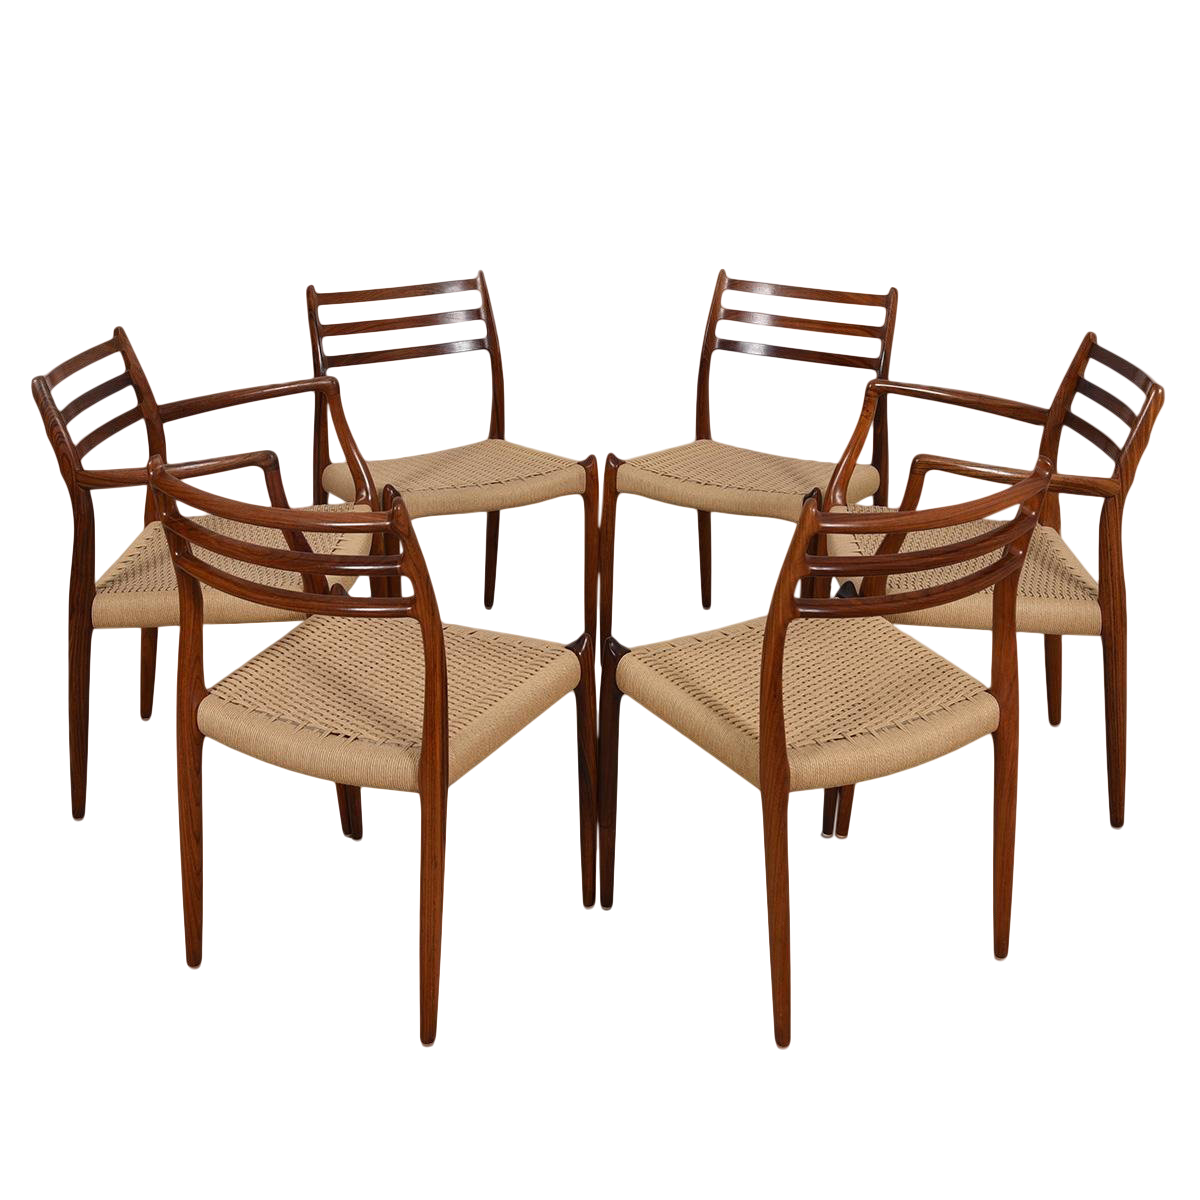 danish design dining chairs designer danish set of danish modern dining chairs by niels moller in rosewood with cord seats